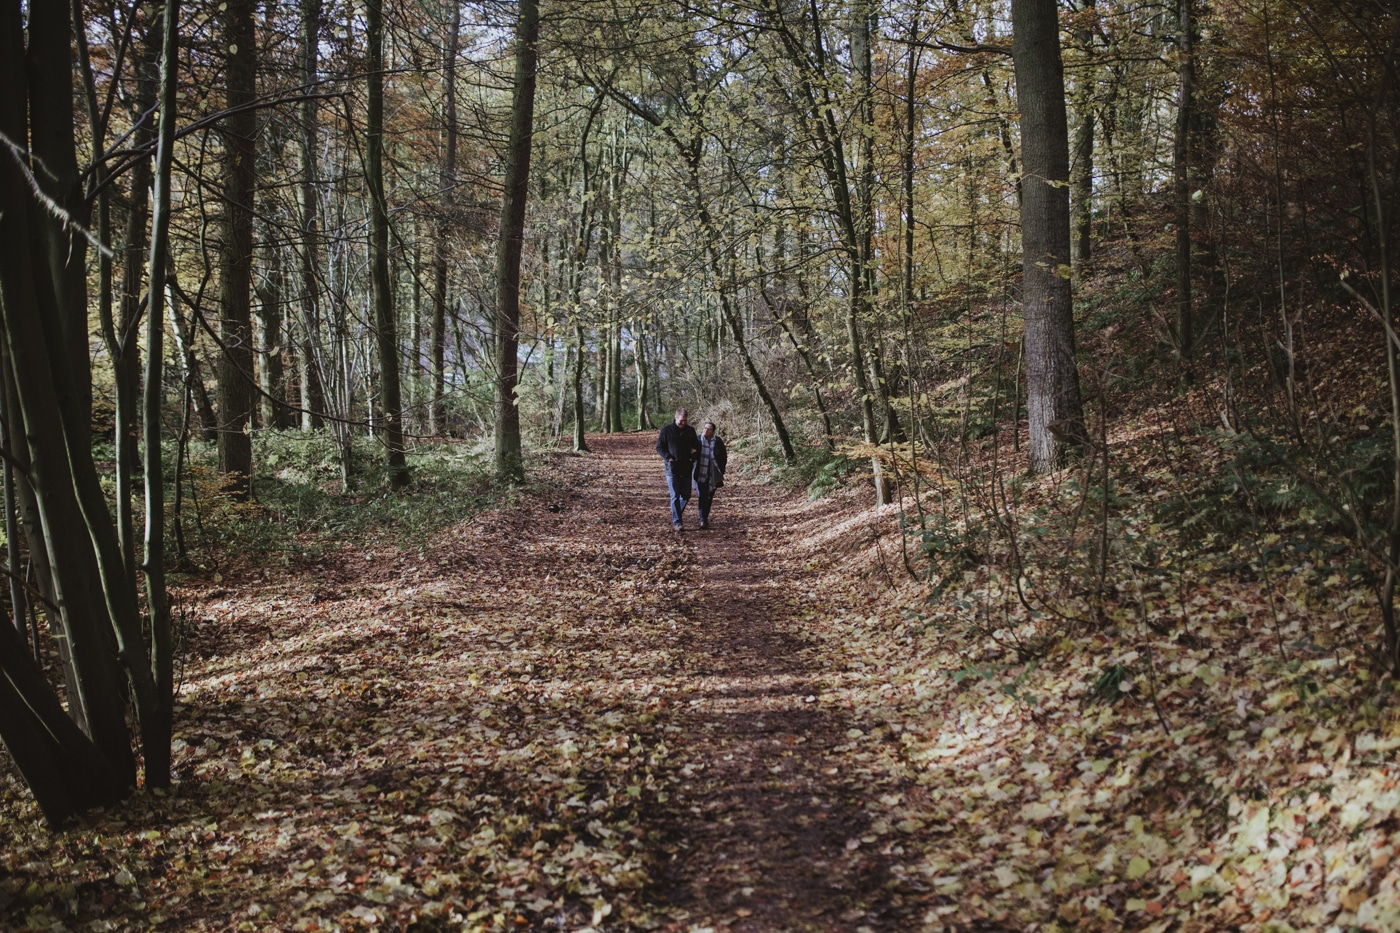 Couple walking through woods in engagment photo shoot by Joshua Wyborn Photographic